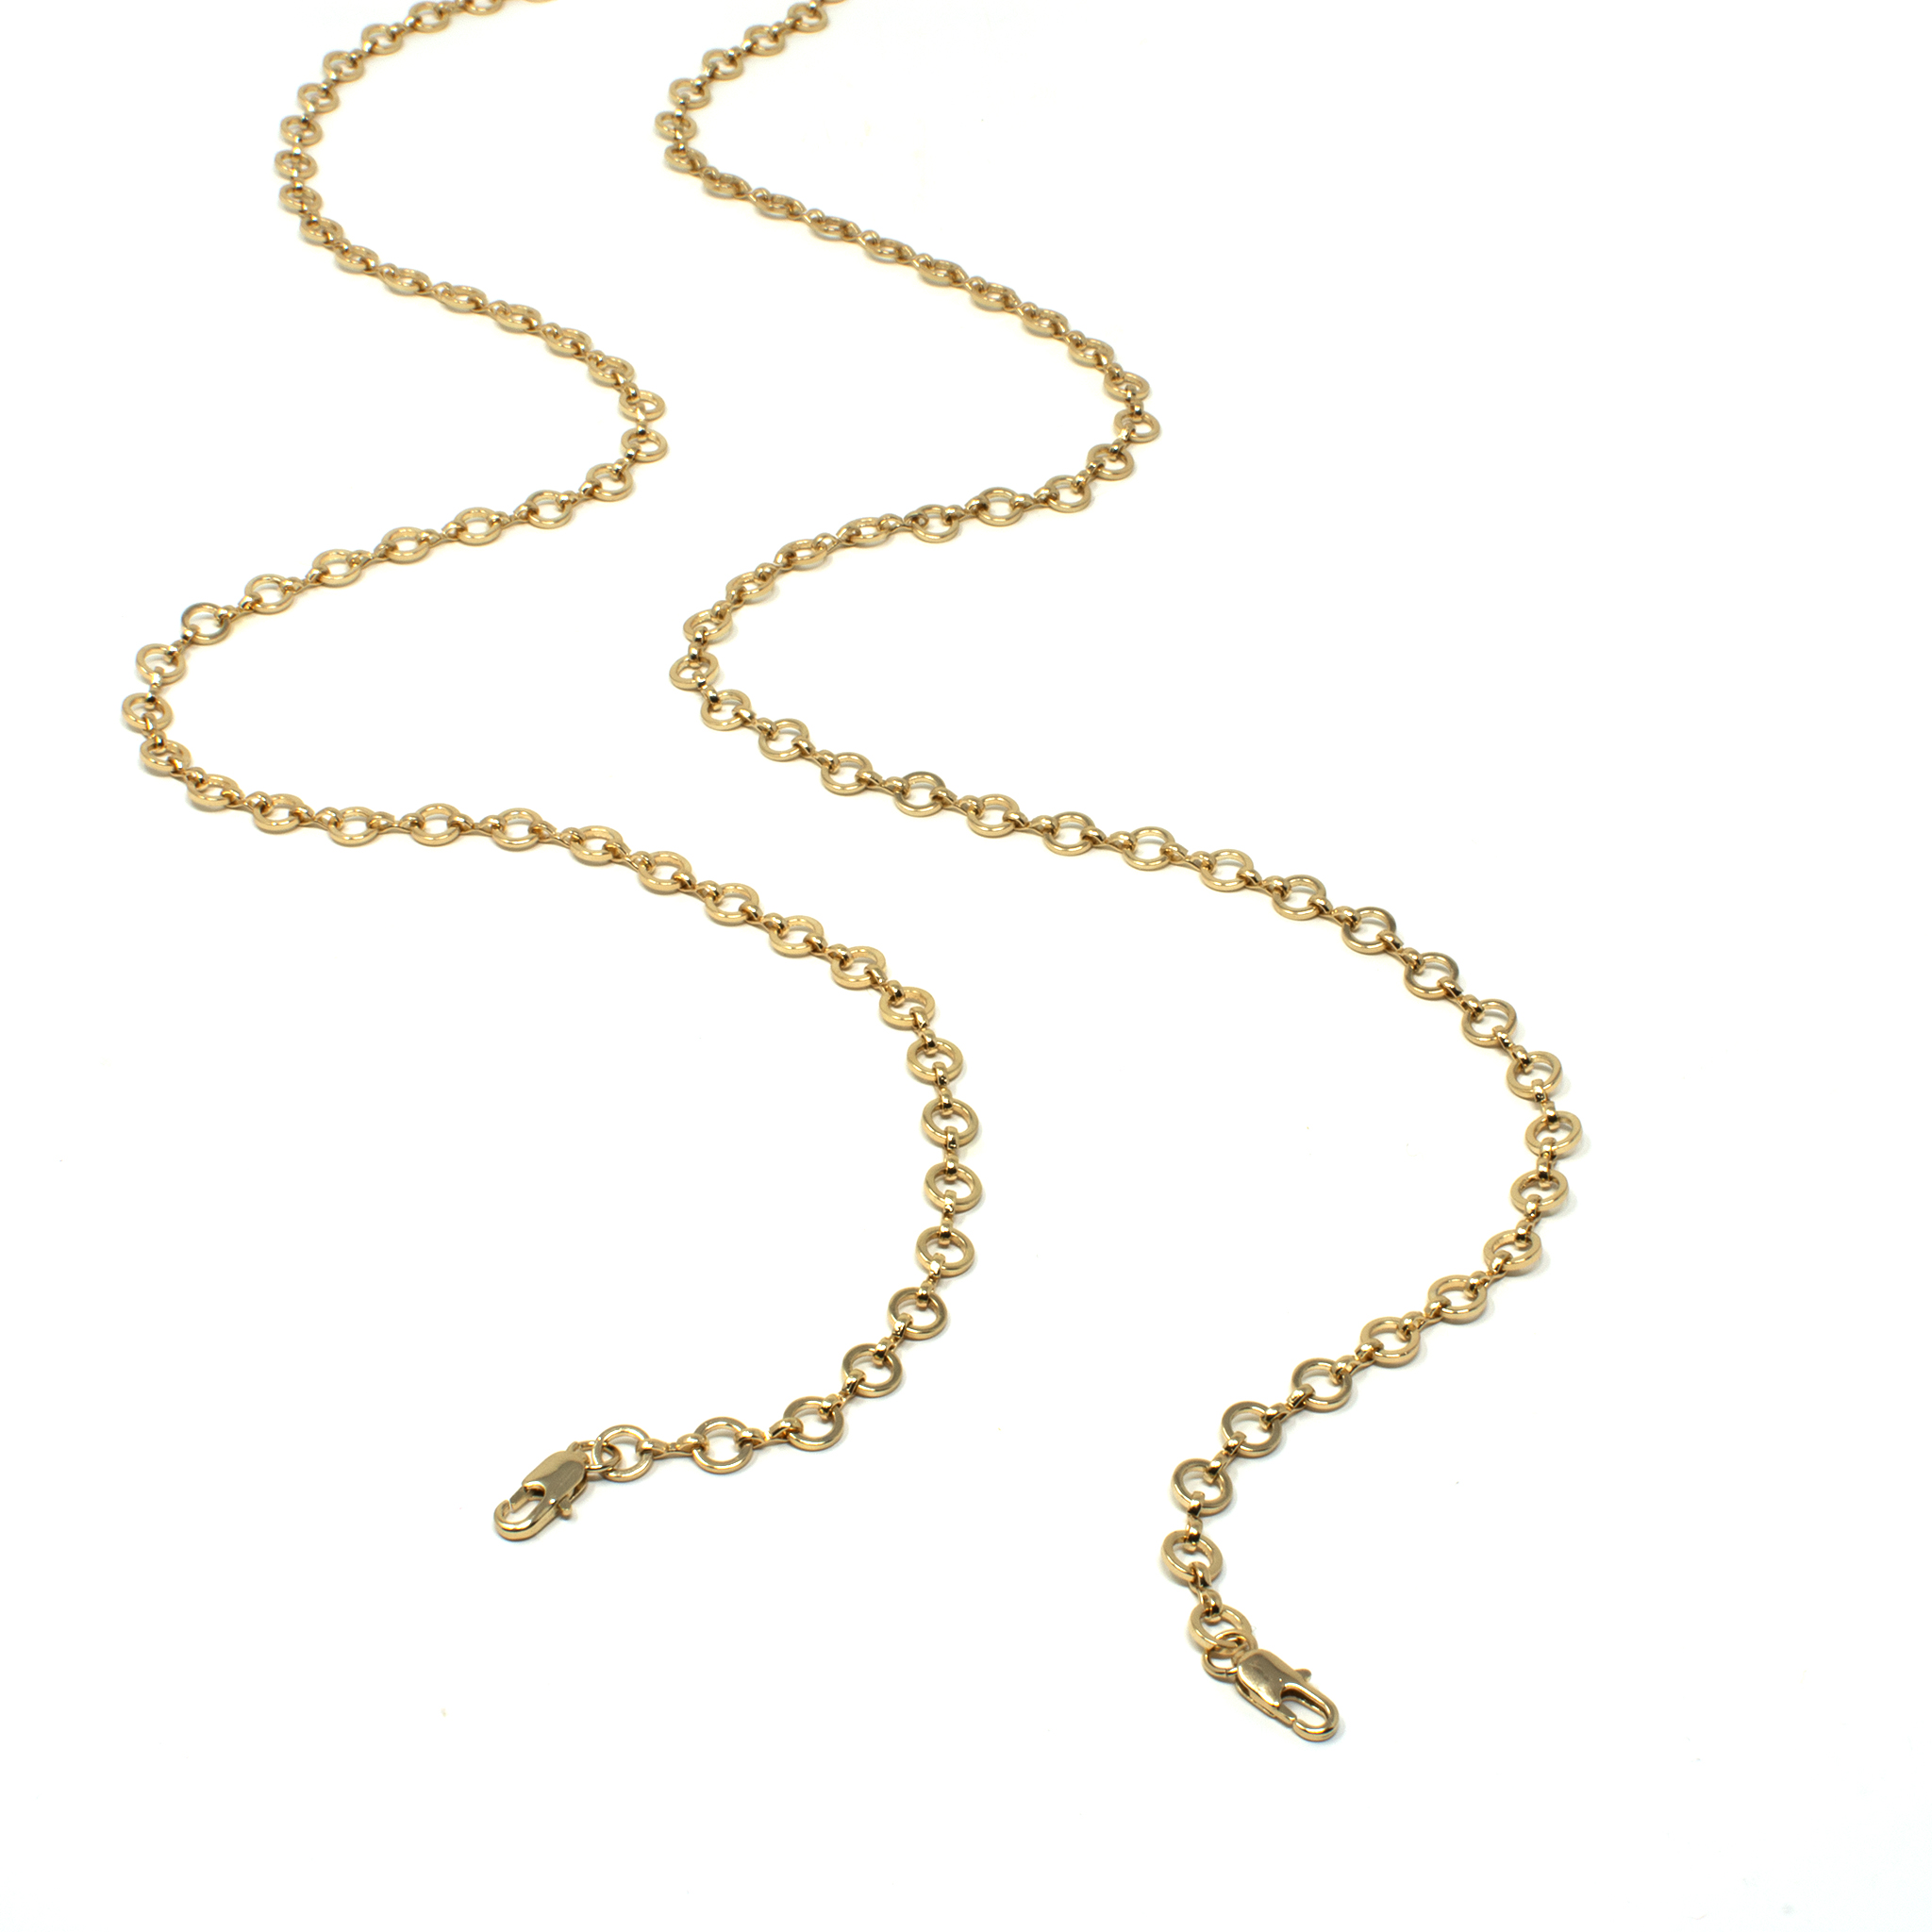 Link chain - Gold by Neon Hope on curated-crowd.com